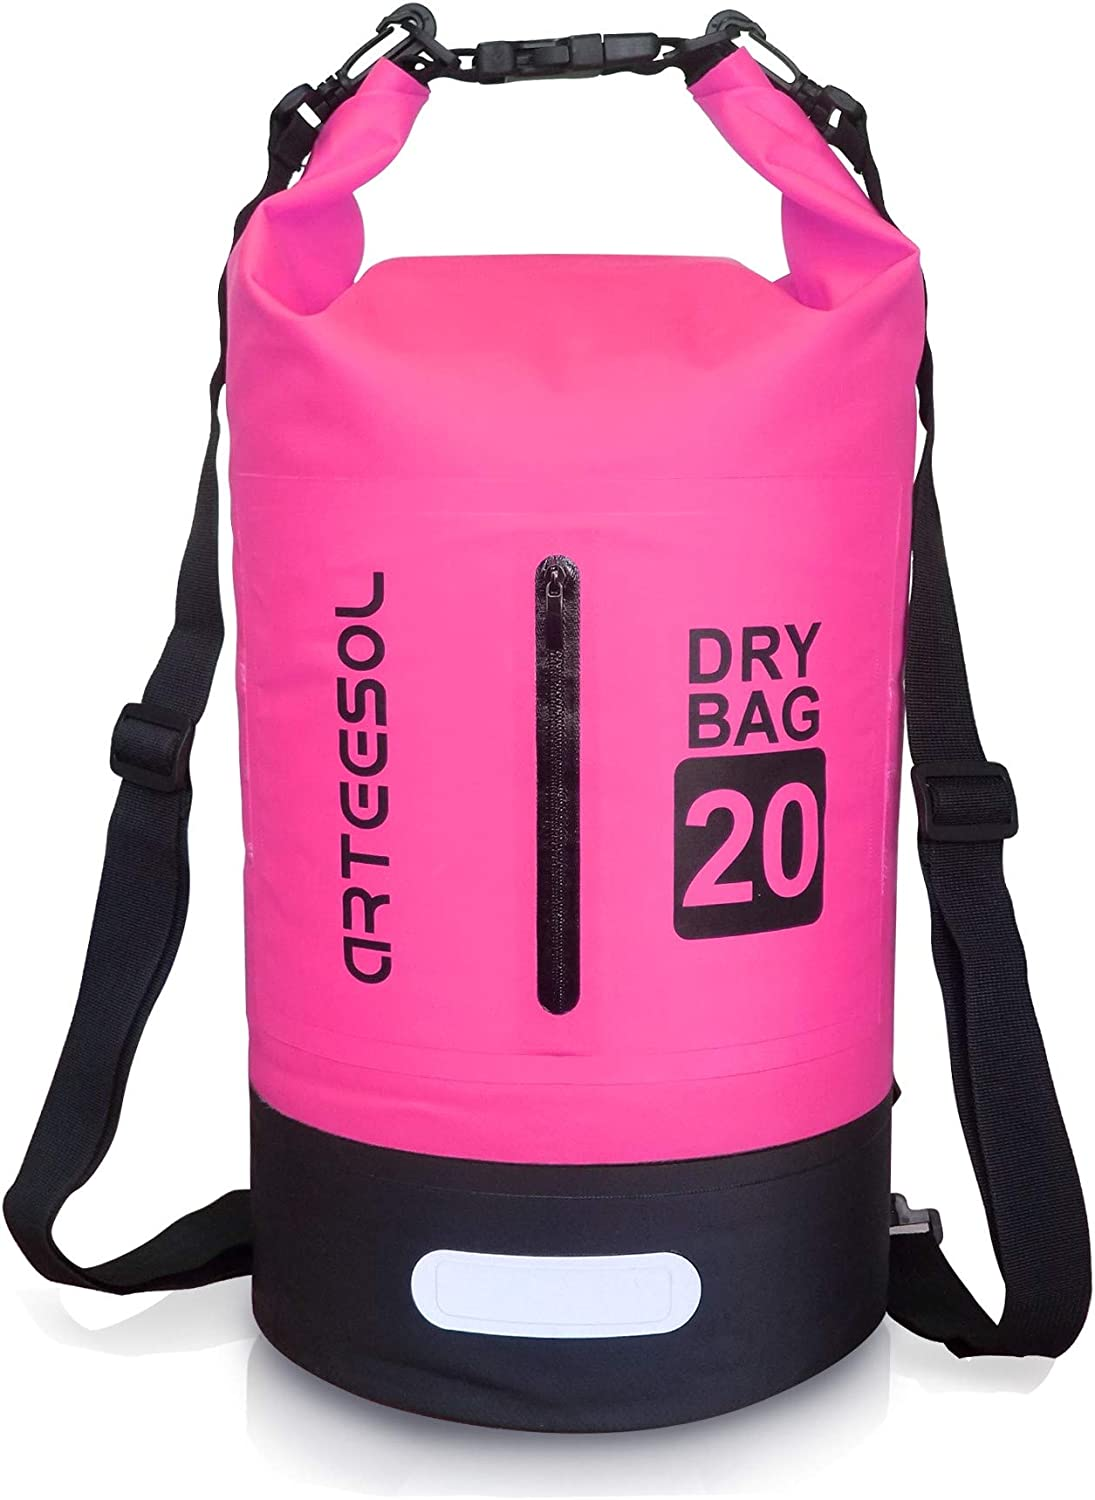 Amazon Com Arteesol Waterproof Dry Bag Backpack Set 5l 10l 20l 30l With Waterproof Phone Pouch Sack Women For Men Keeps Gear Dry Outdoor Water Sports Kayaking Swimming Boating Fishing Cycling Beach Canoeing Sports